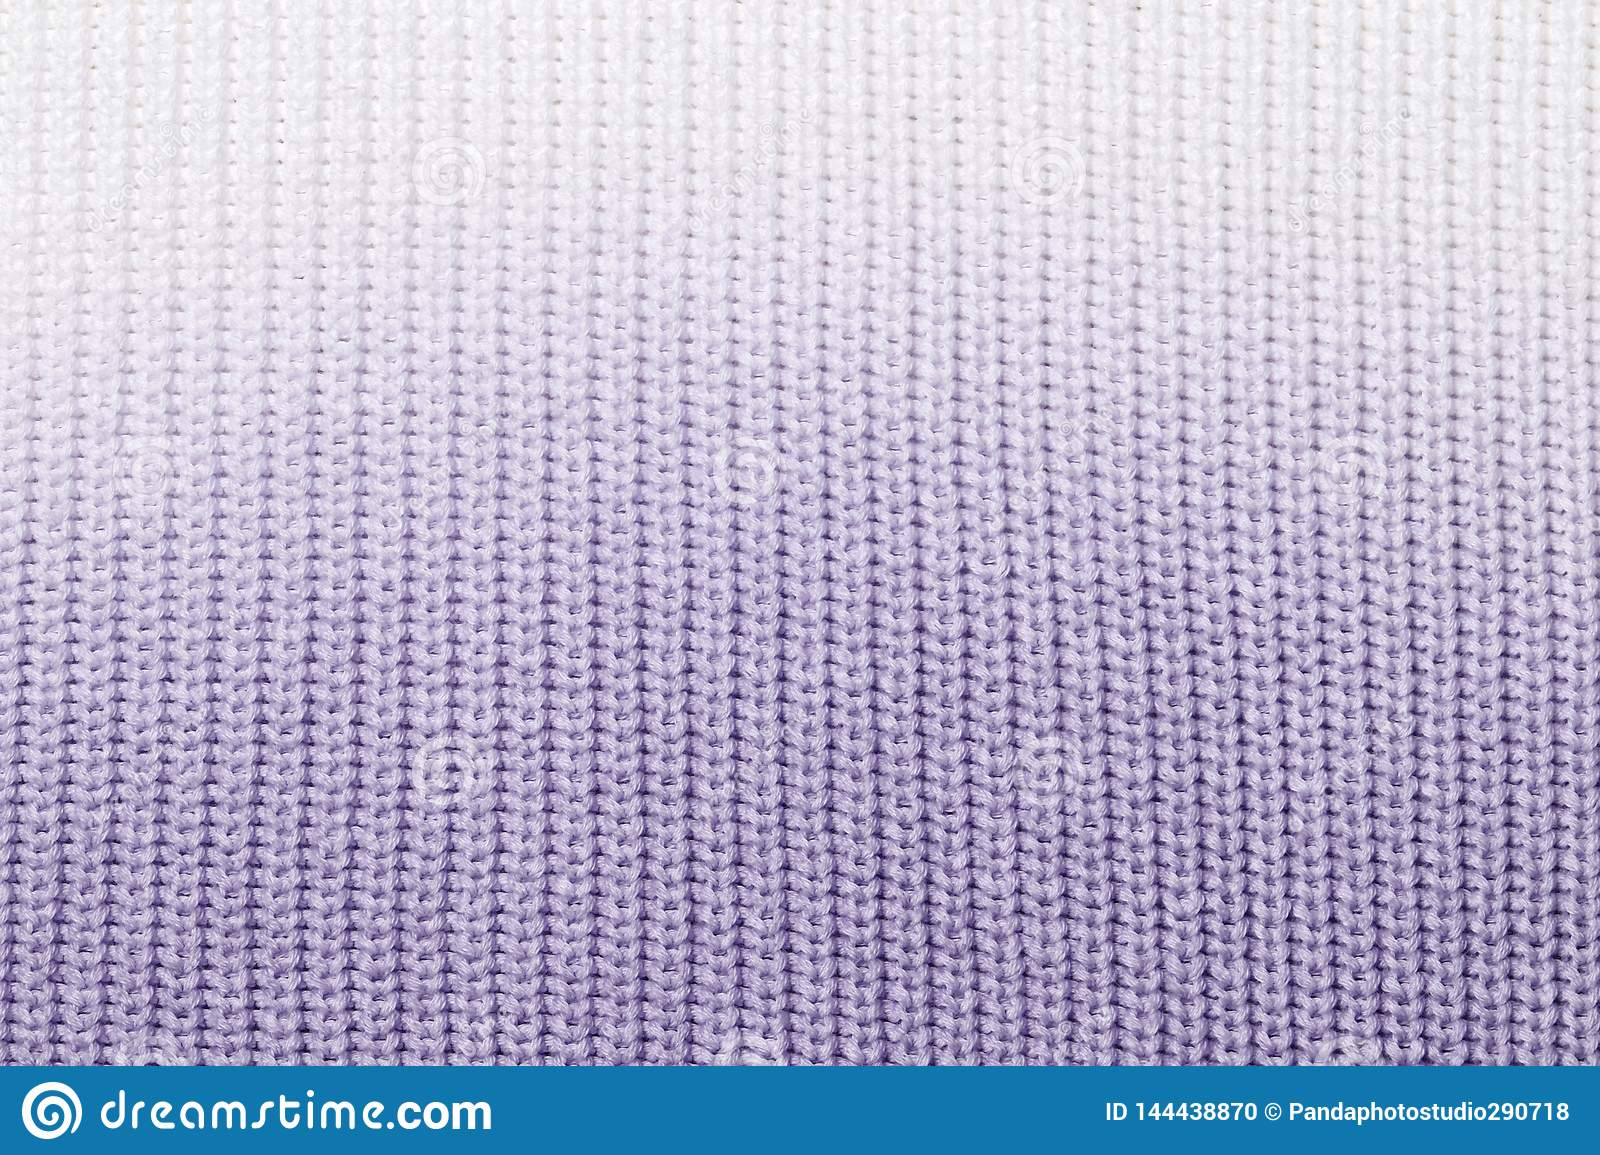 The texture of a knitted woolen fabric blue